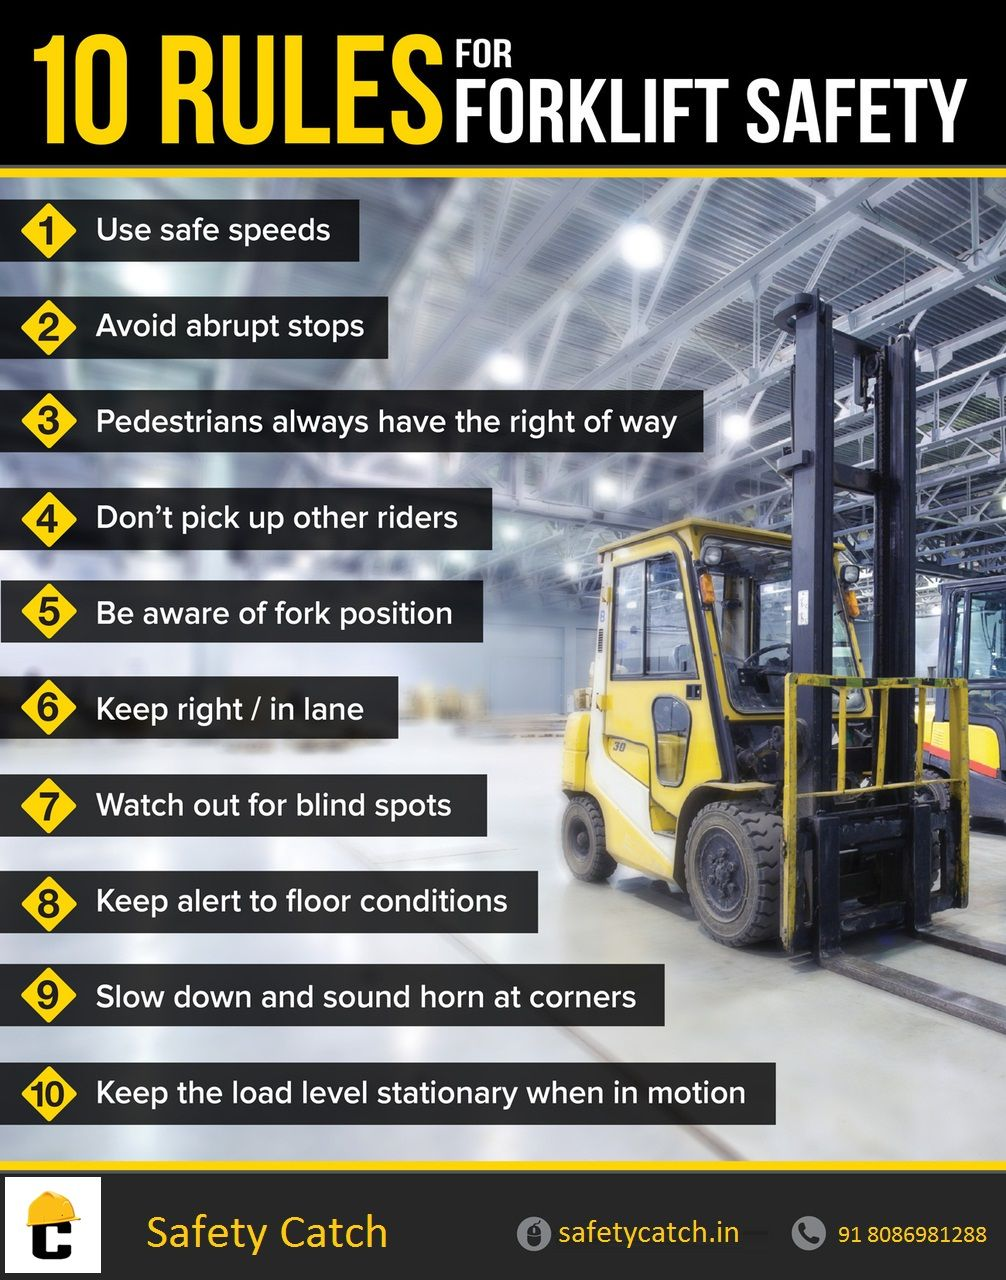 Forklift Safety tips for safety workers. Safety Tips